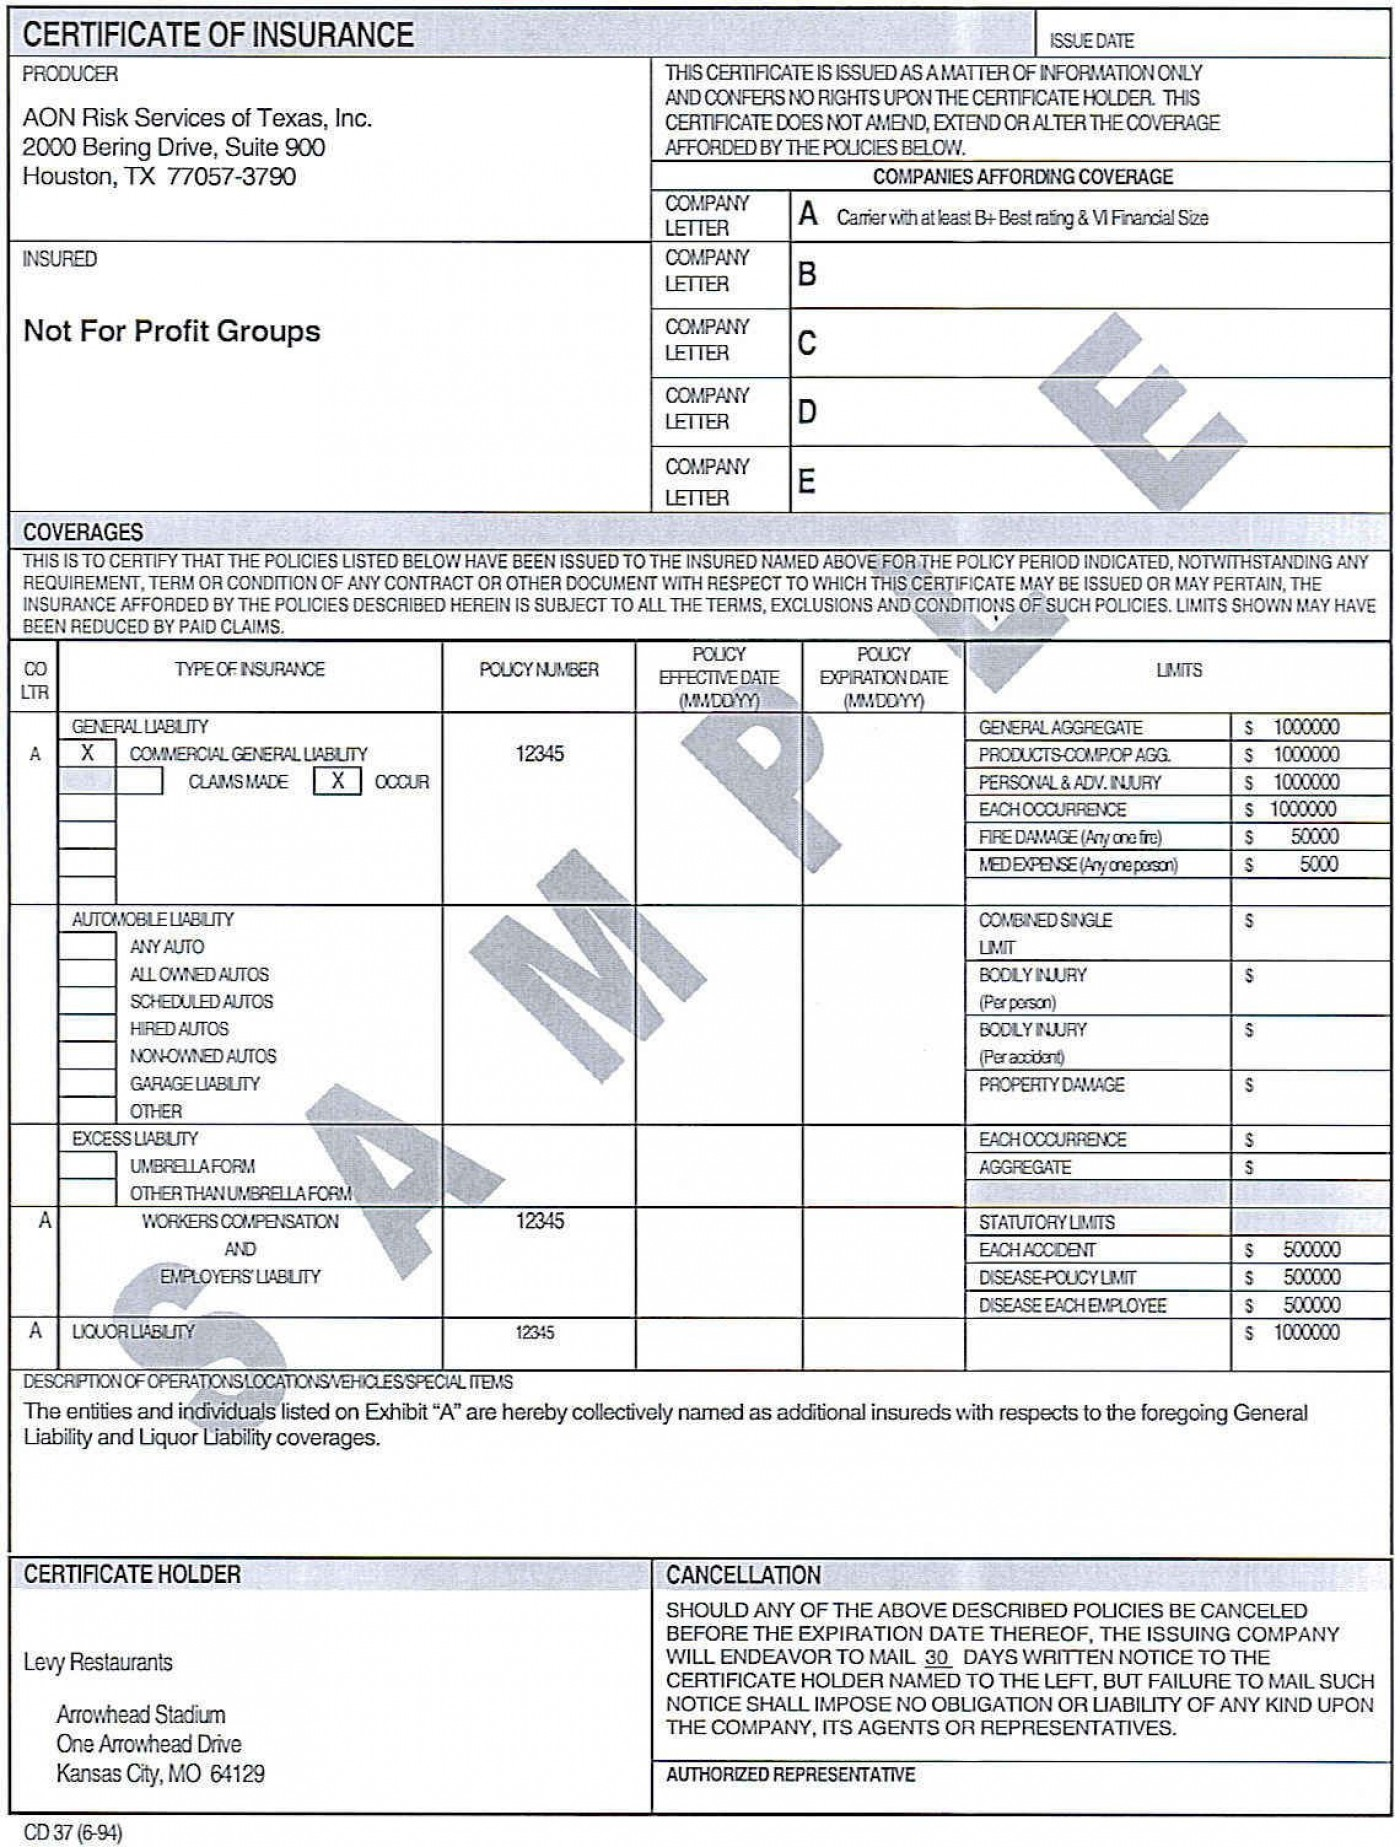 007 Incredible Certificate Of Insurance Template Image  Sample Pdf Csio Tracking Acces1400